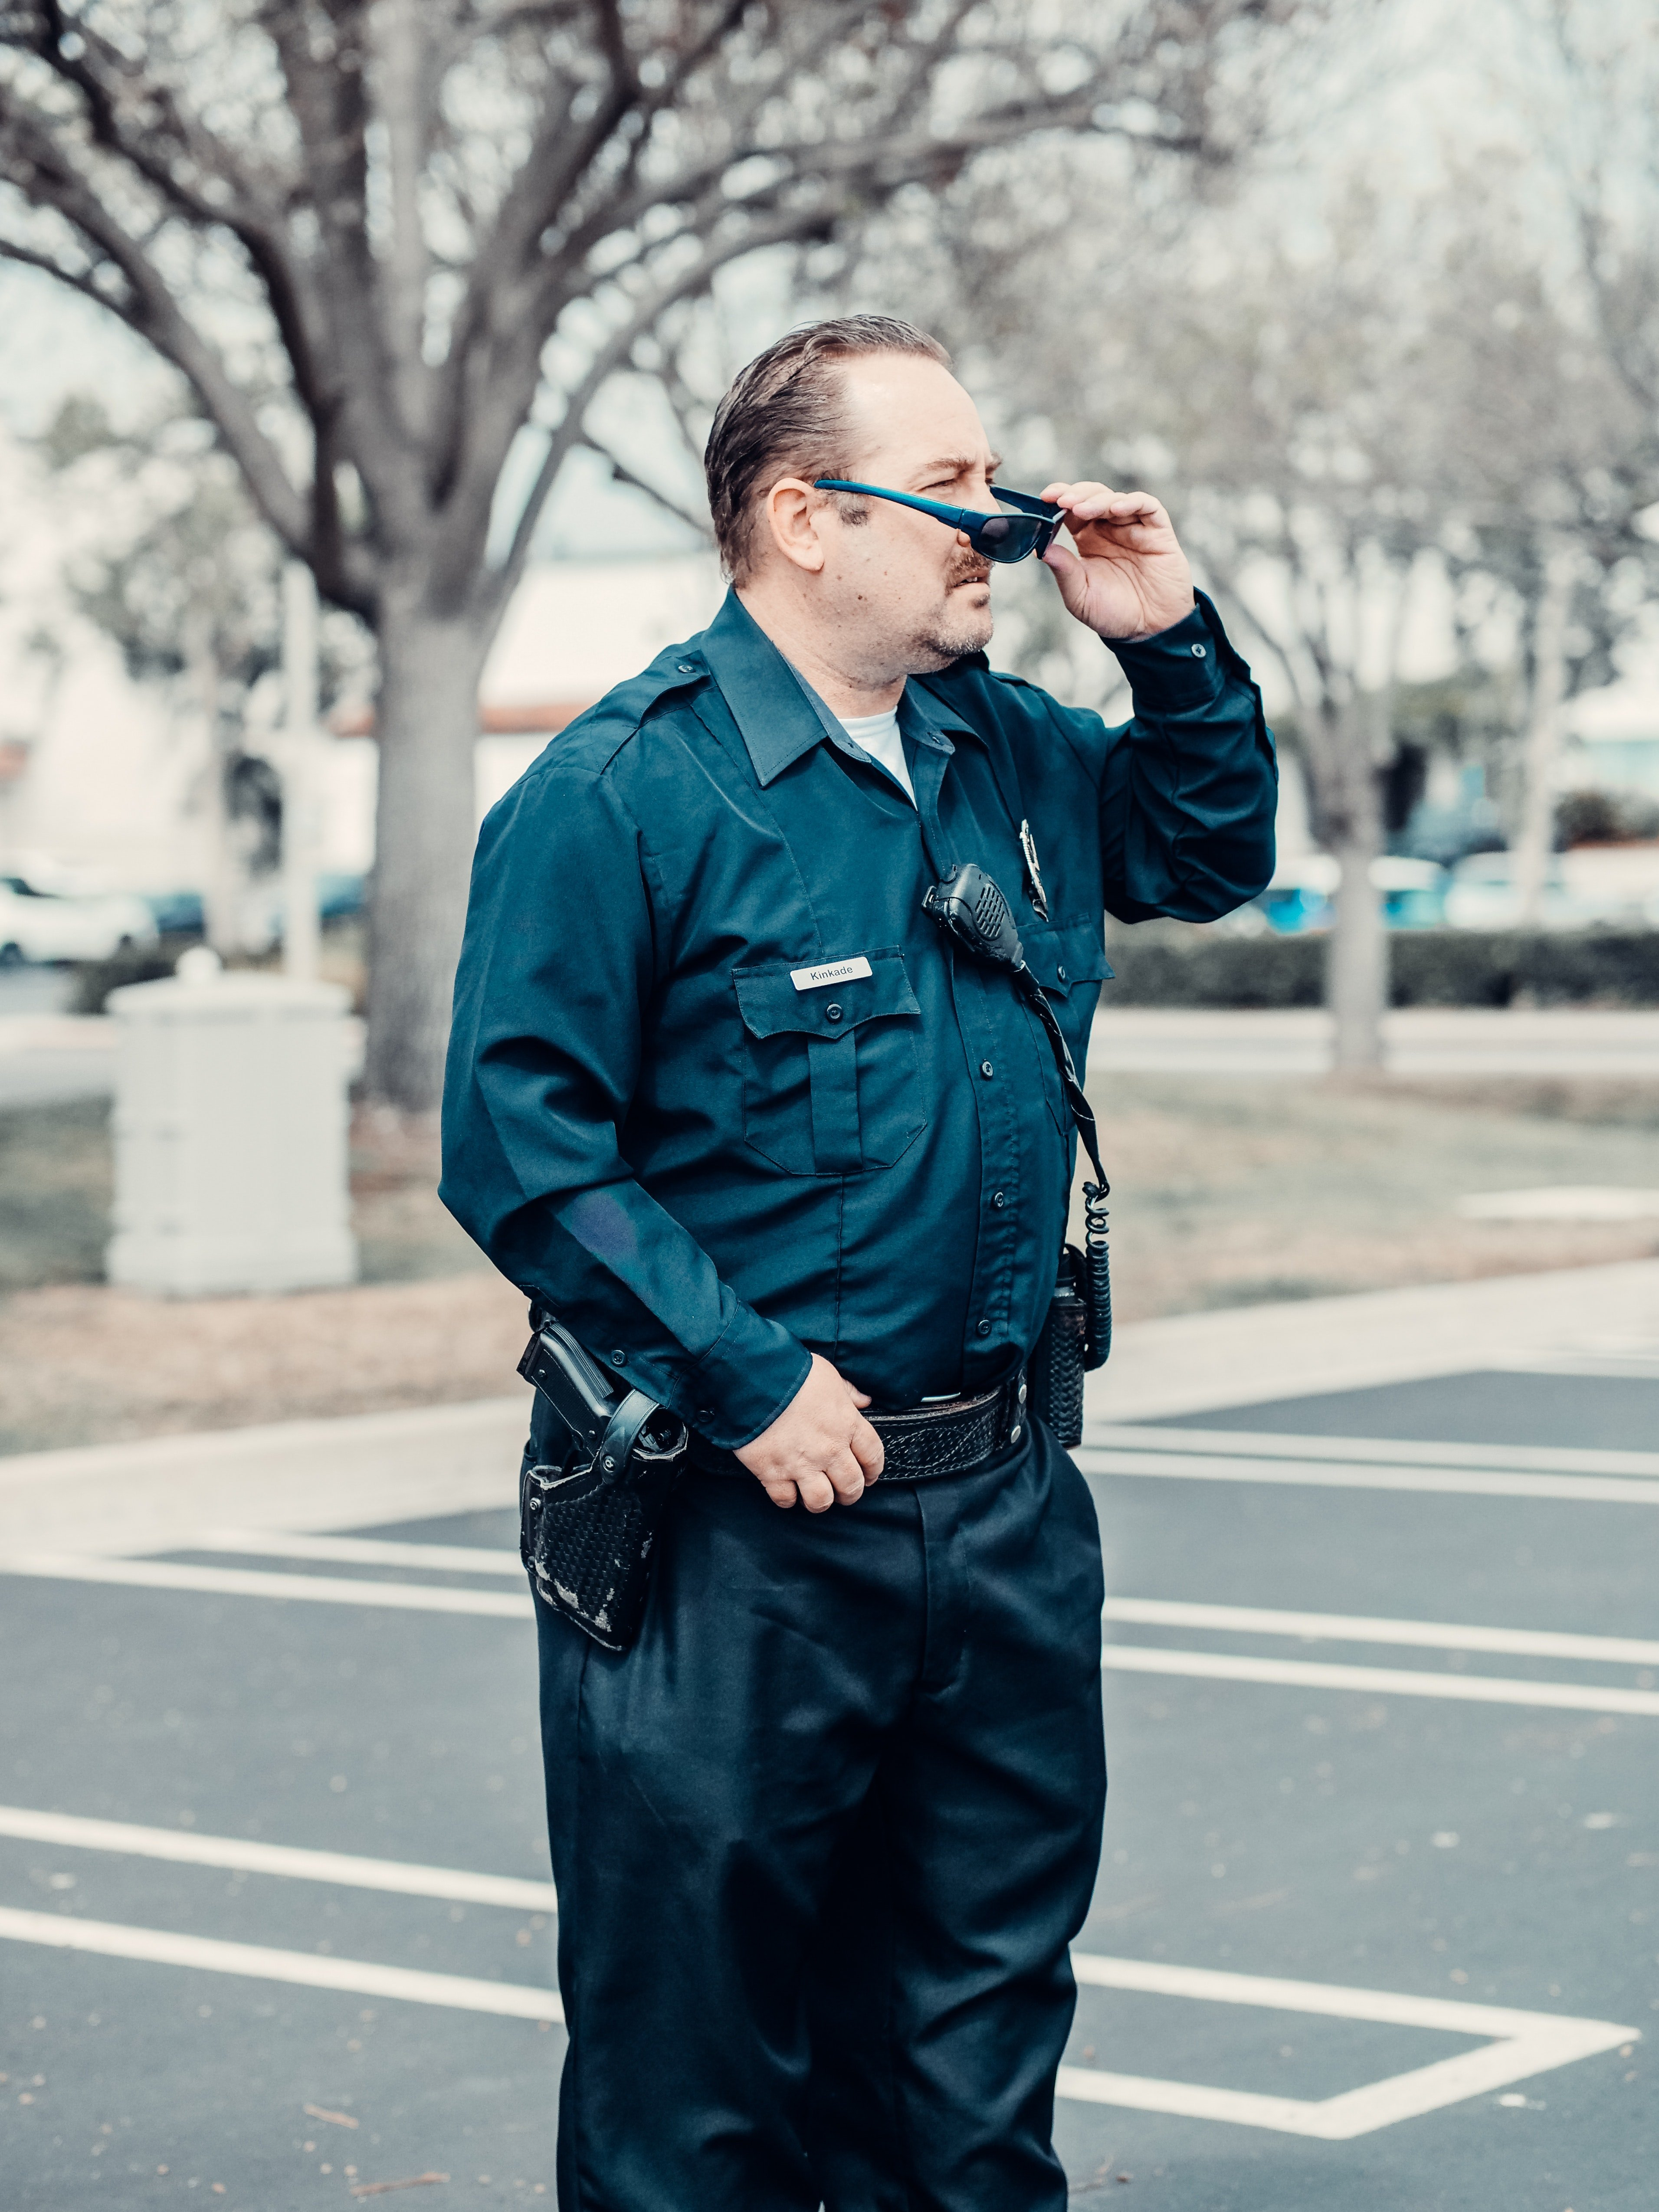 An officer in blue uniform standing on the road.   Photo: Pexels/Kindle Media